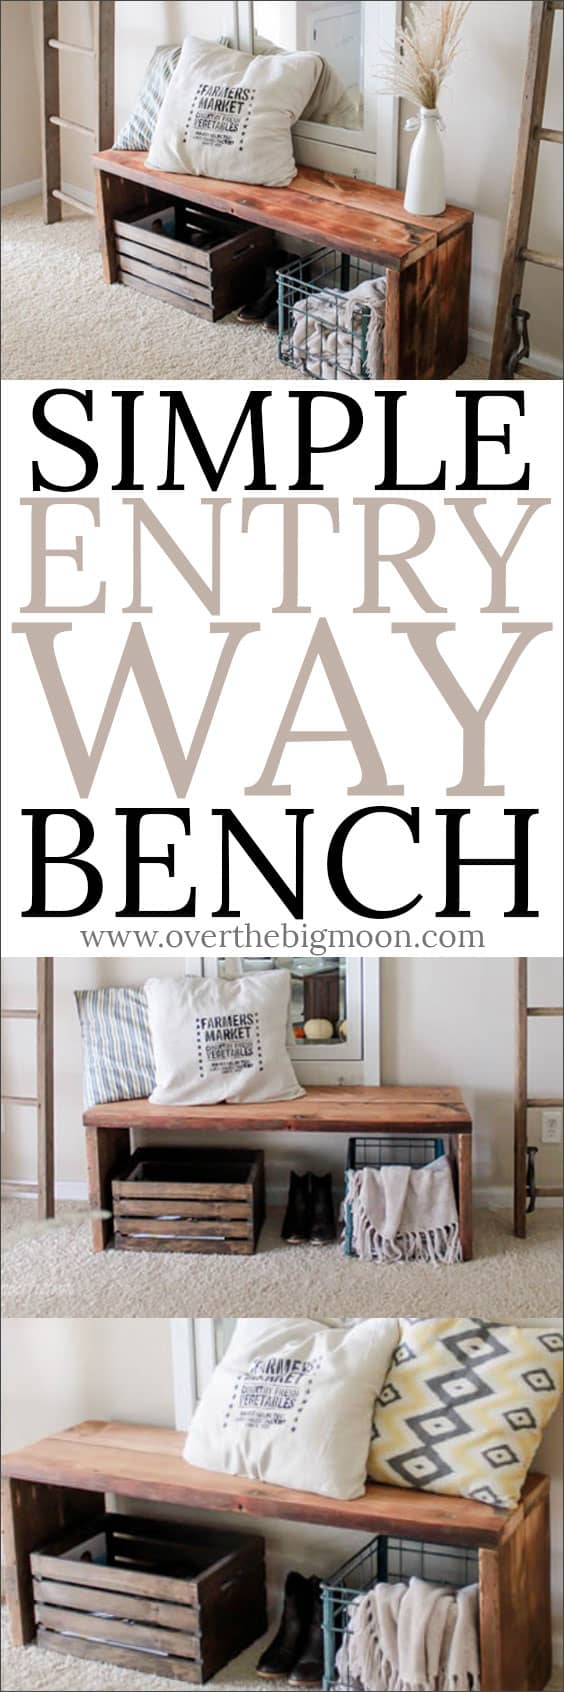 Simple DIY Entry Way Bench - this project is perfect for beginning word workers! Check out the tutorial at overthebigmoon.com!